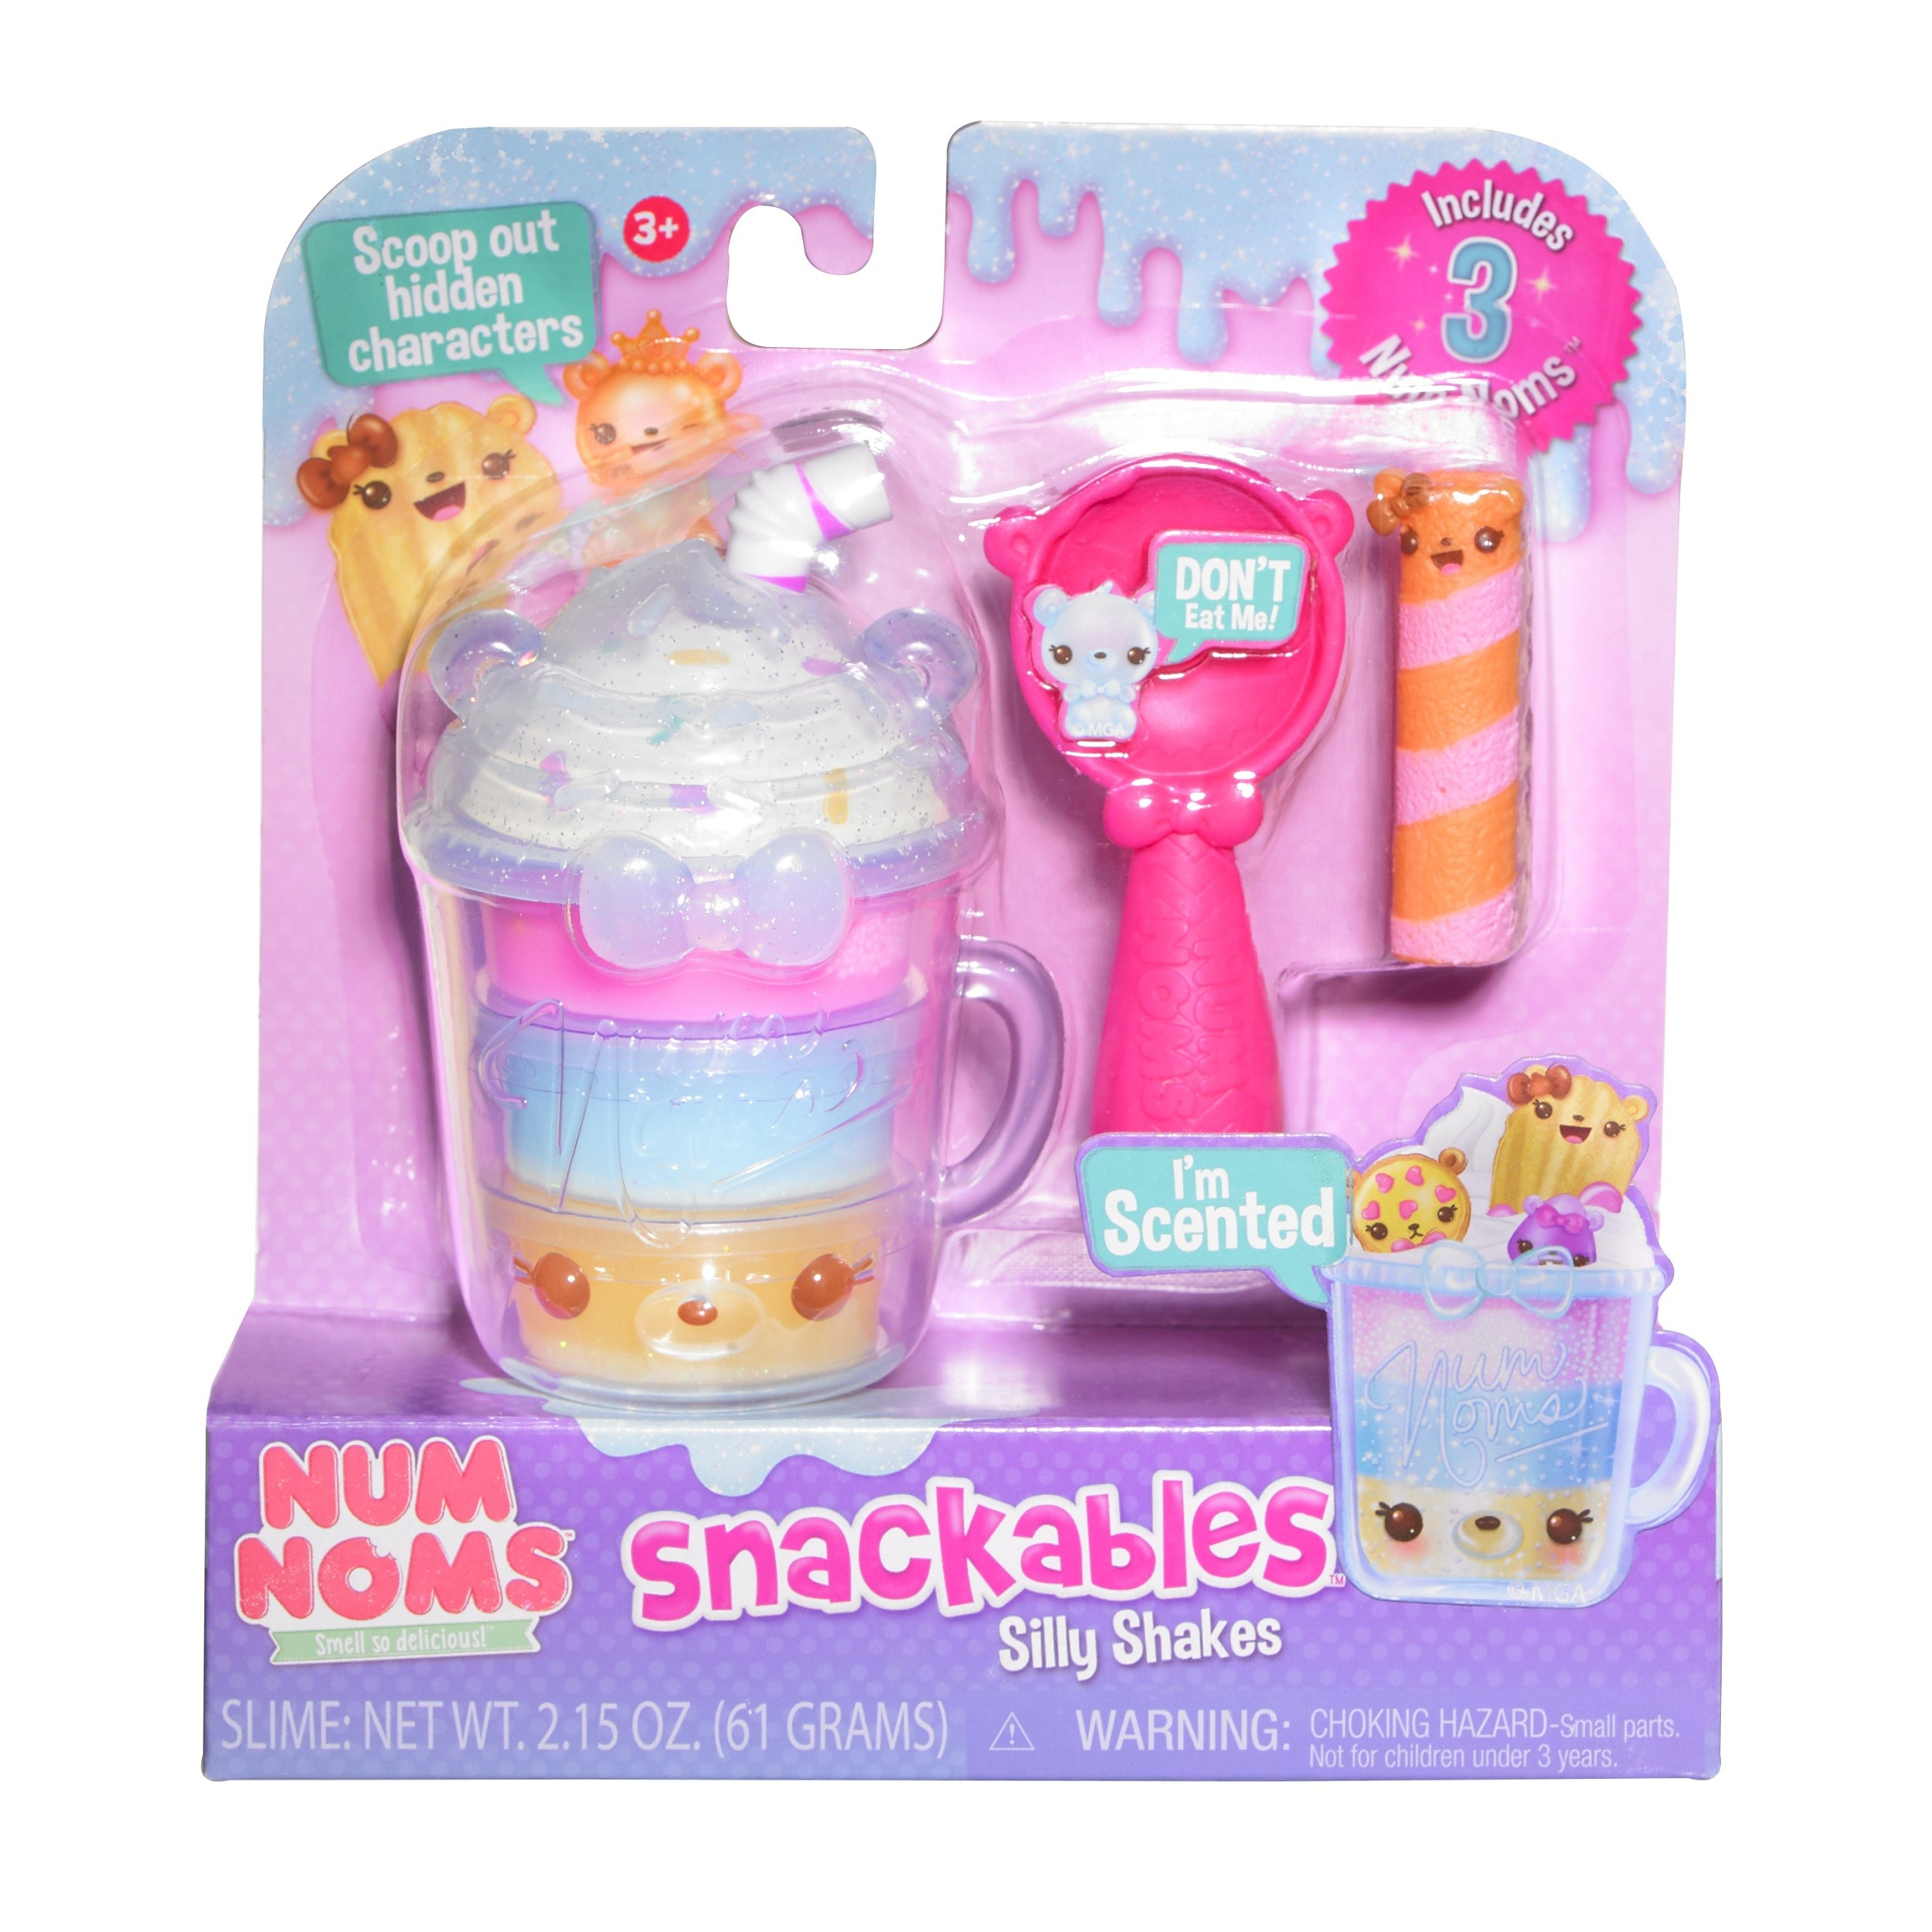 Num noms snackables scented silly shakes - cotton candy